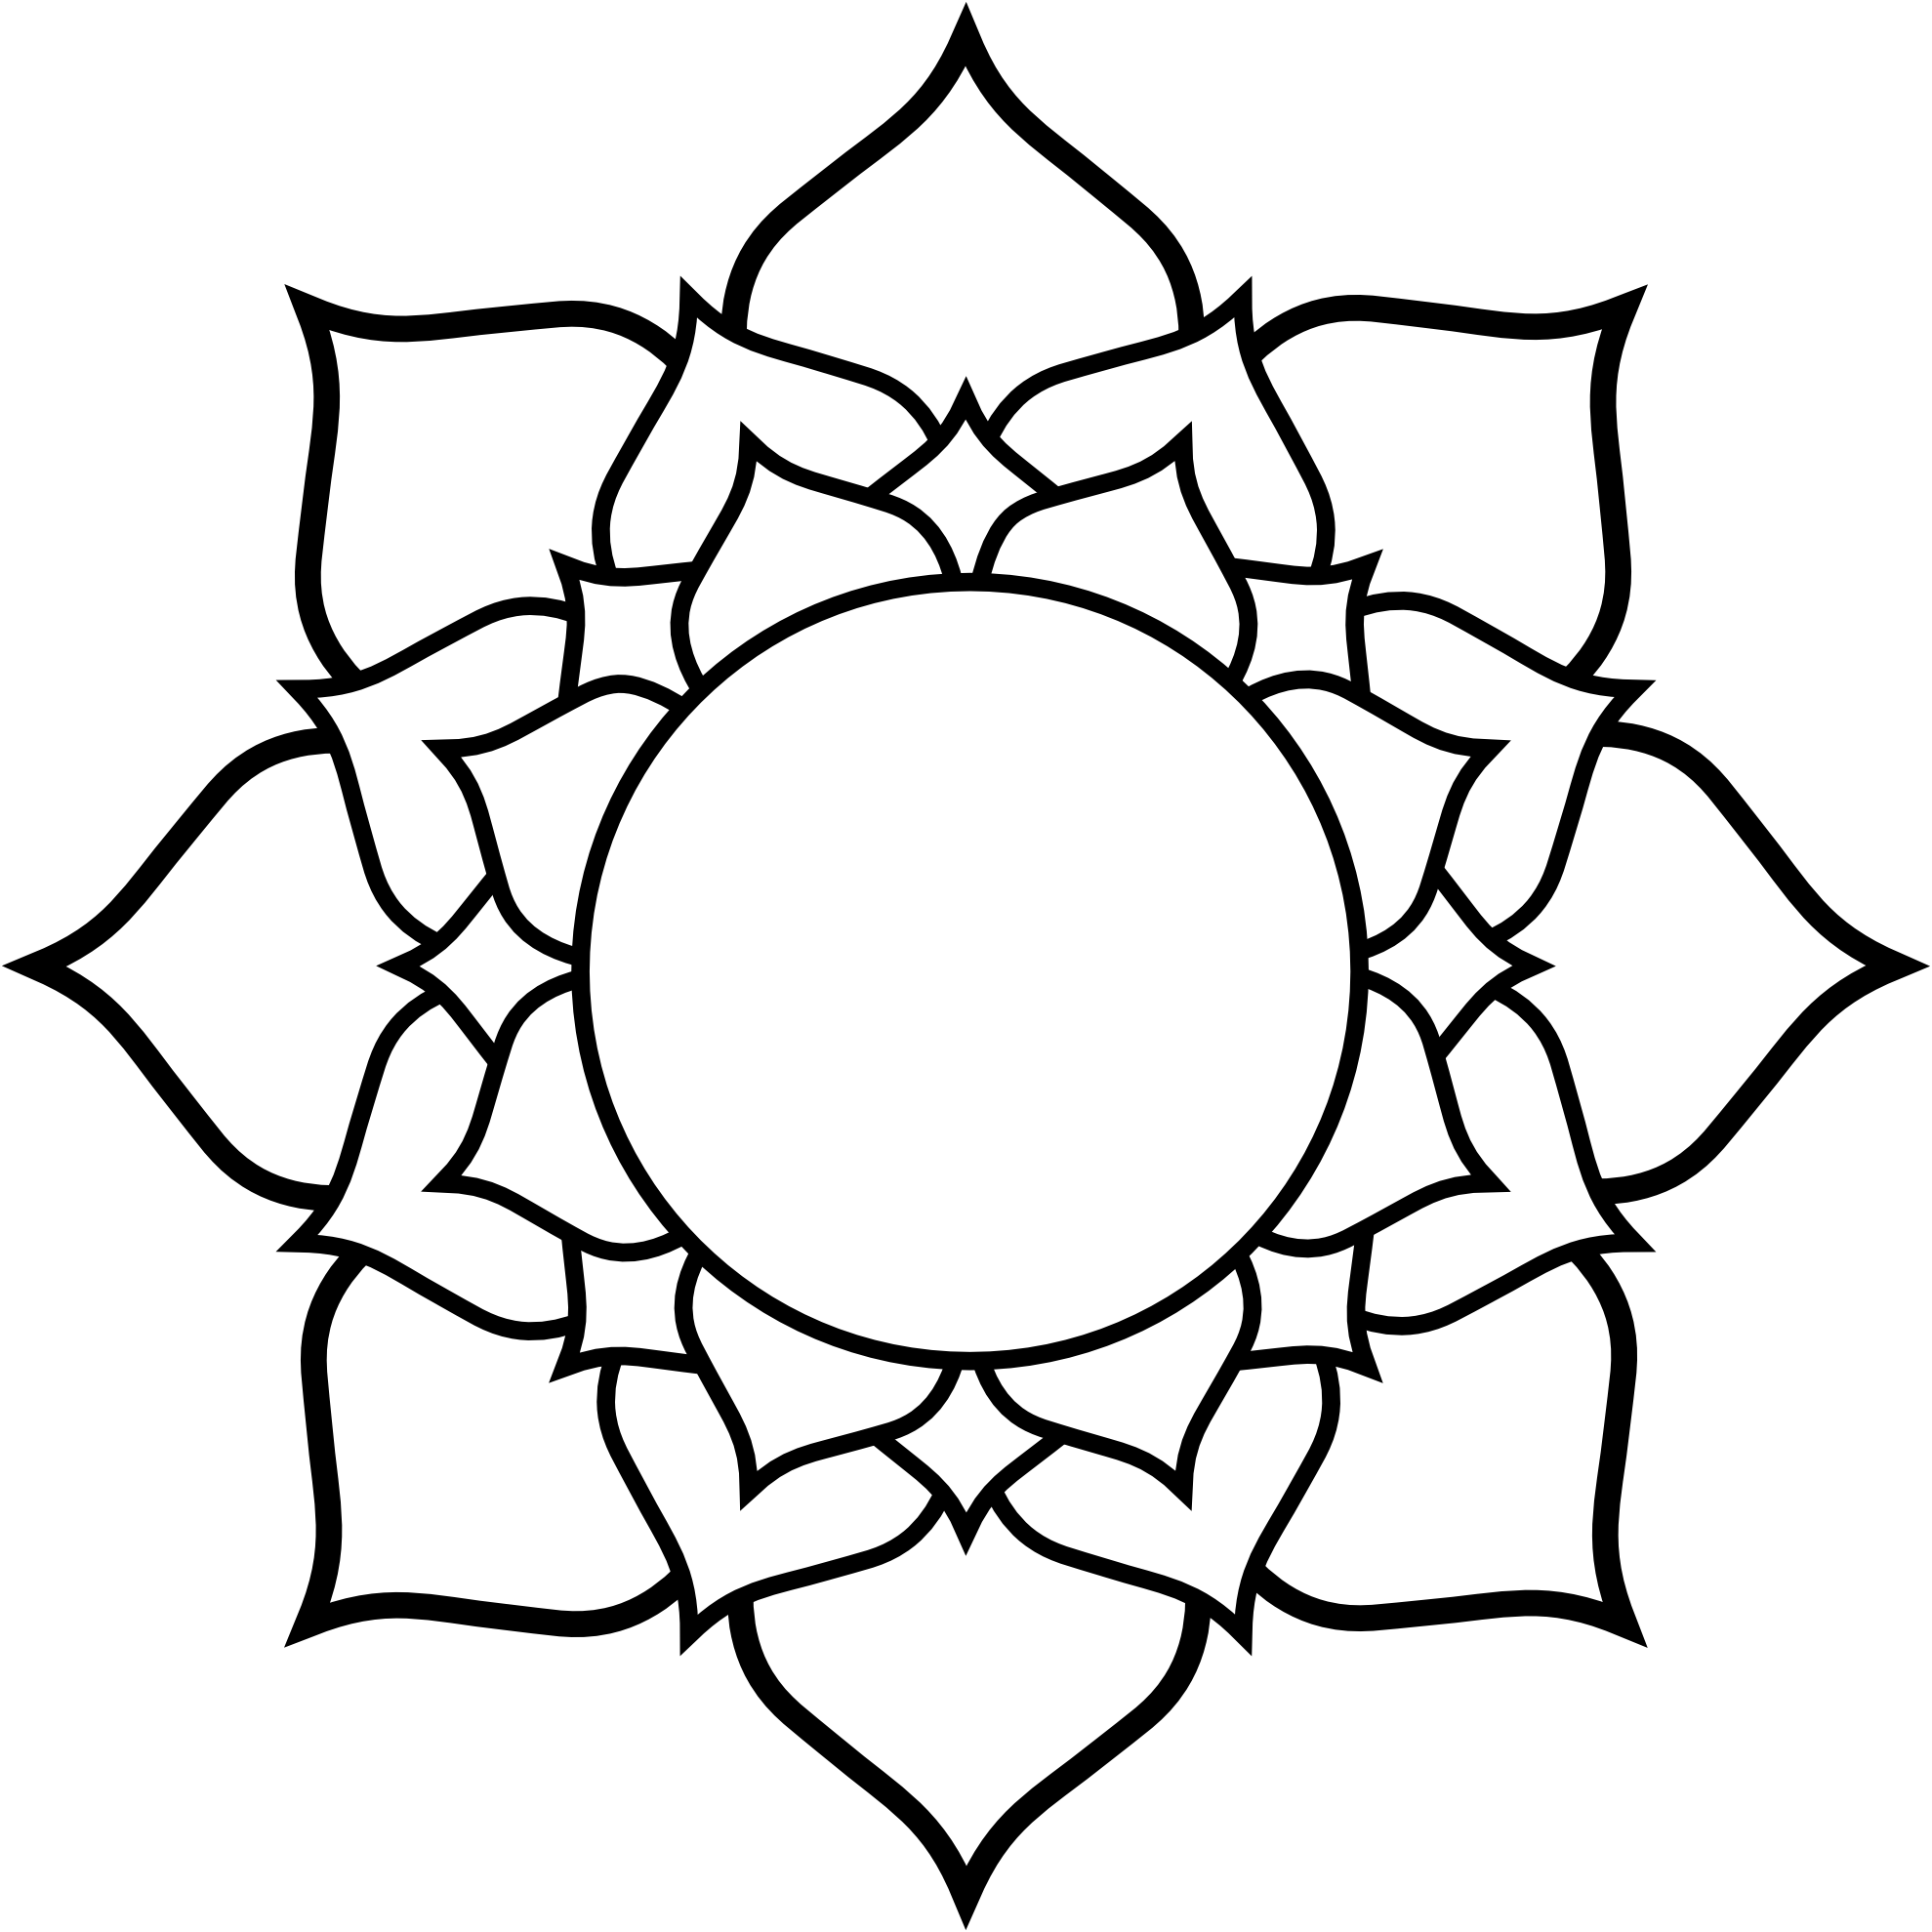 Image Coloring Book Of Flags Lotus Black White Line Flower Art